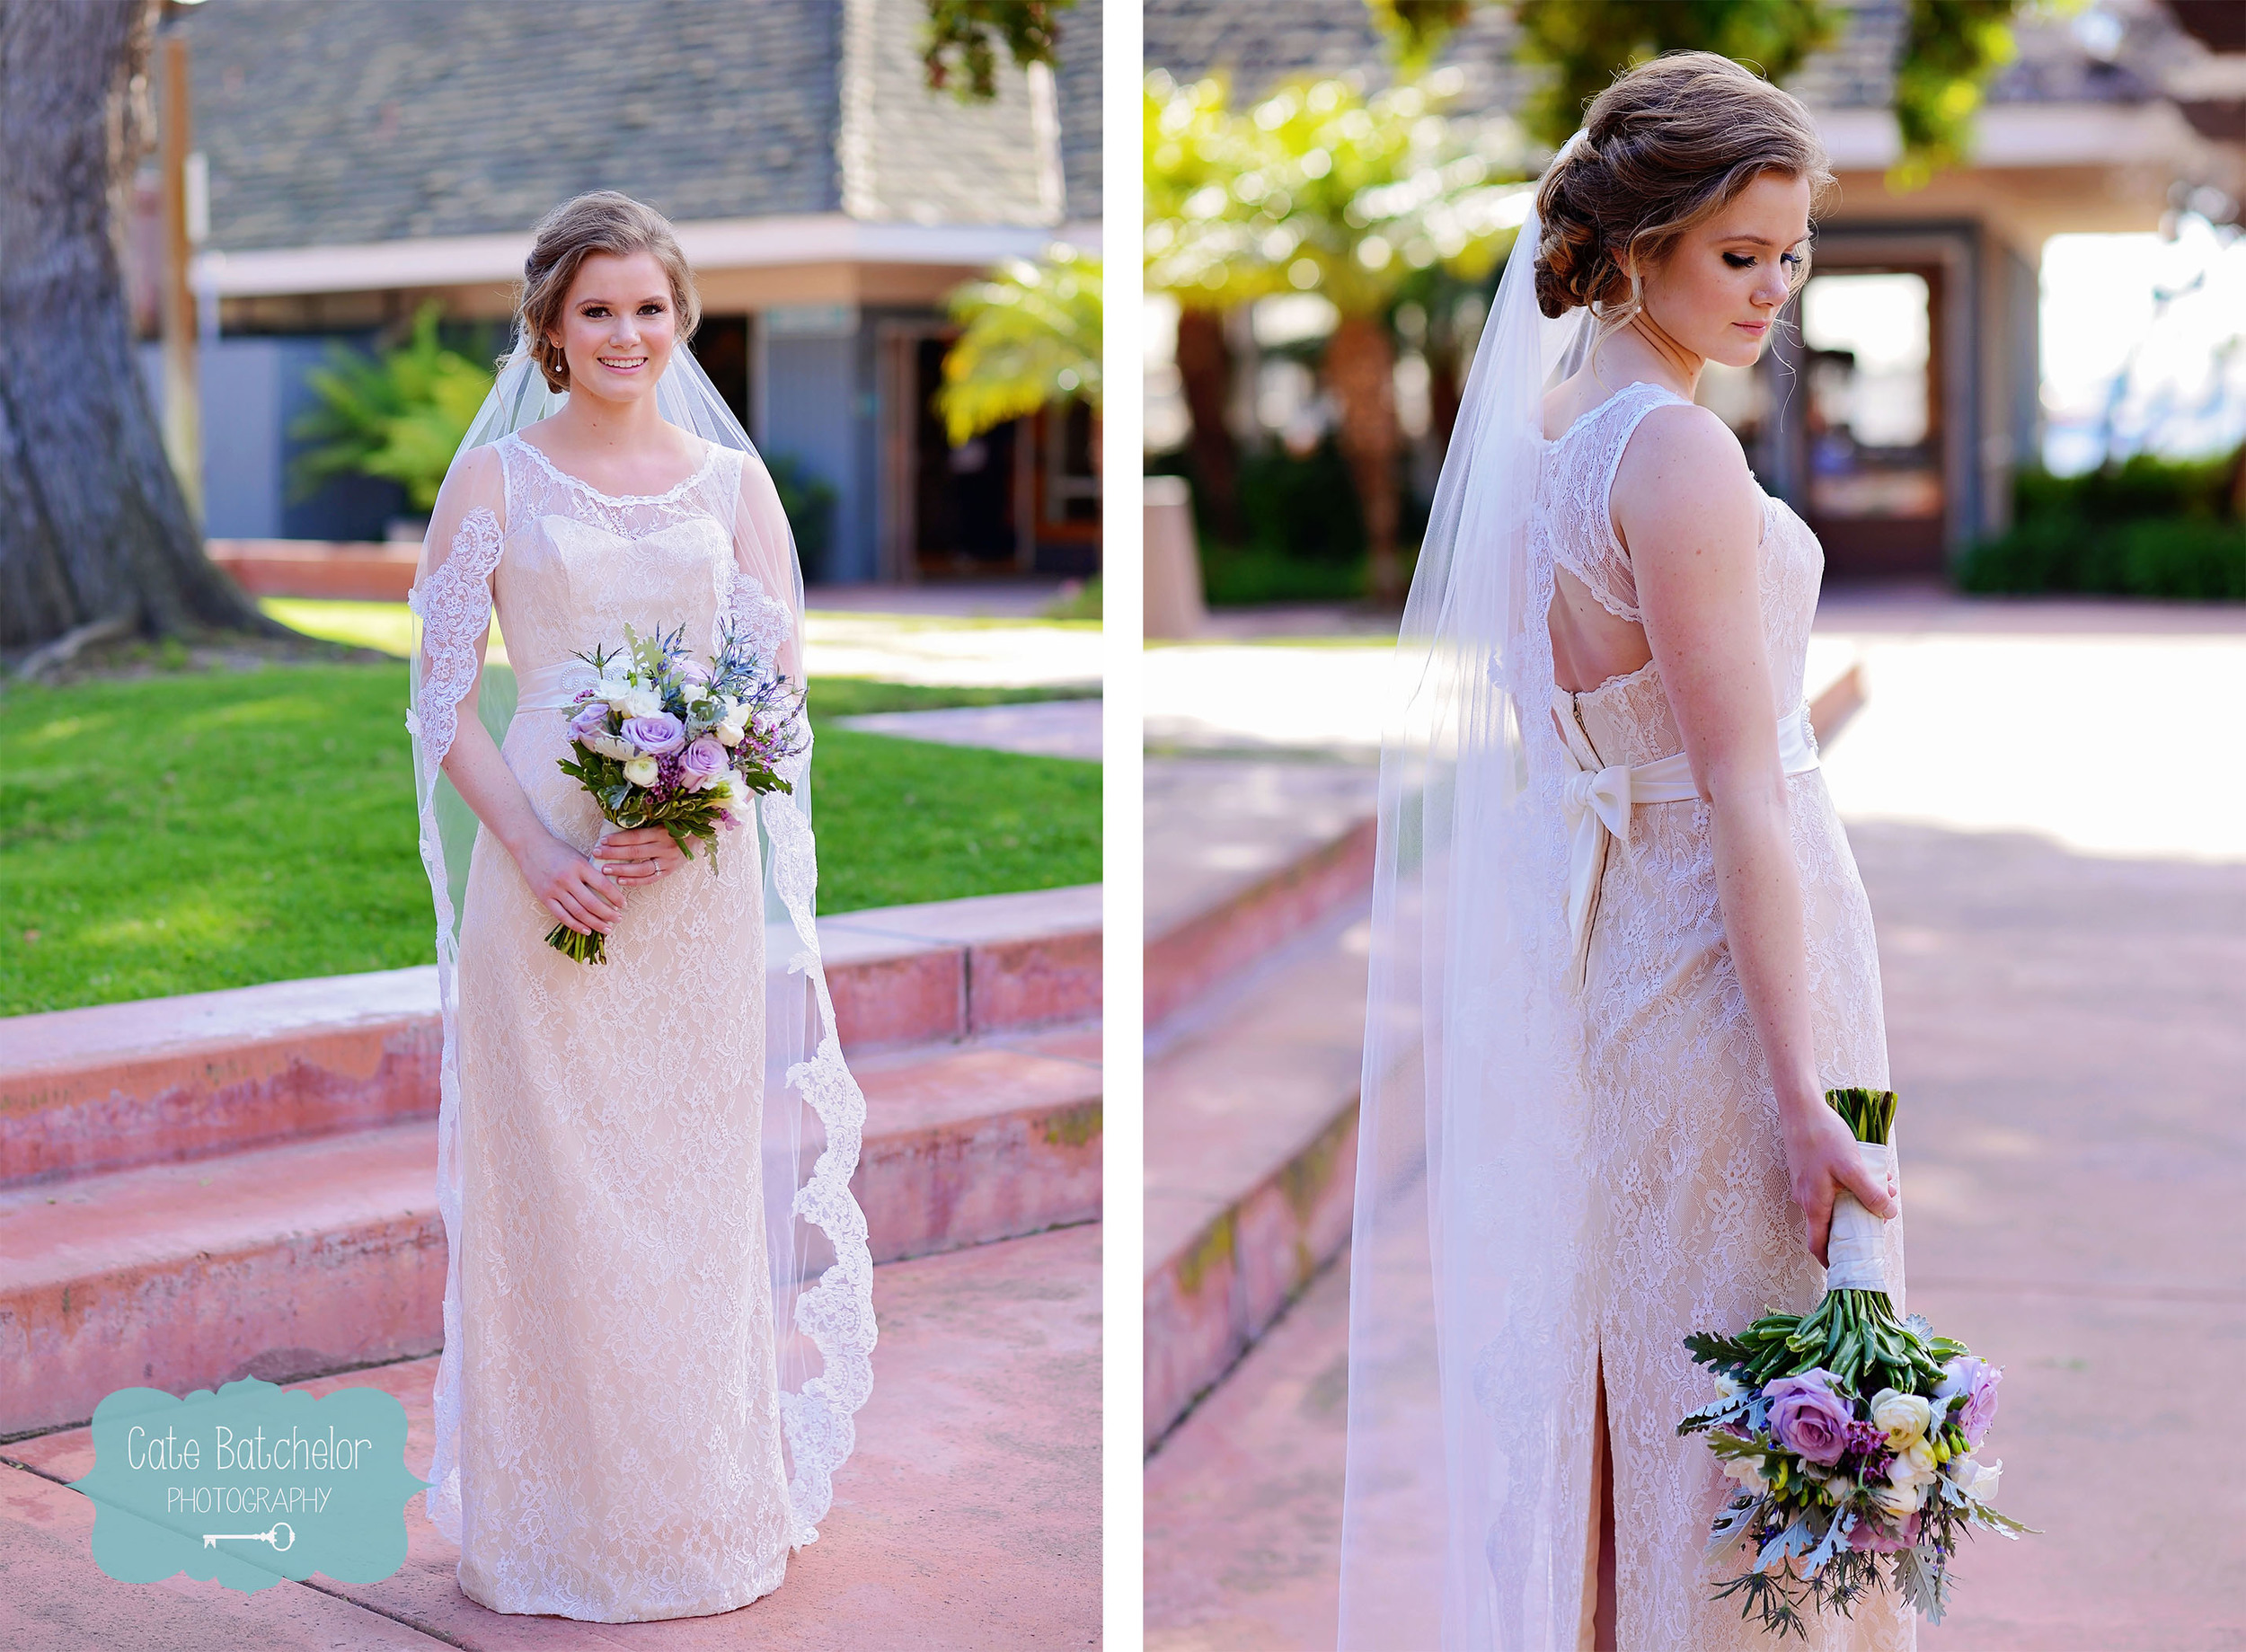 Leslie looking stunning before the ceremony.